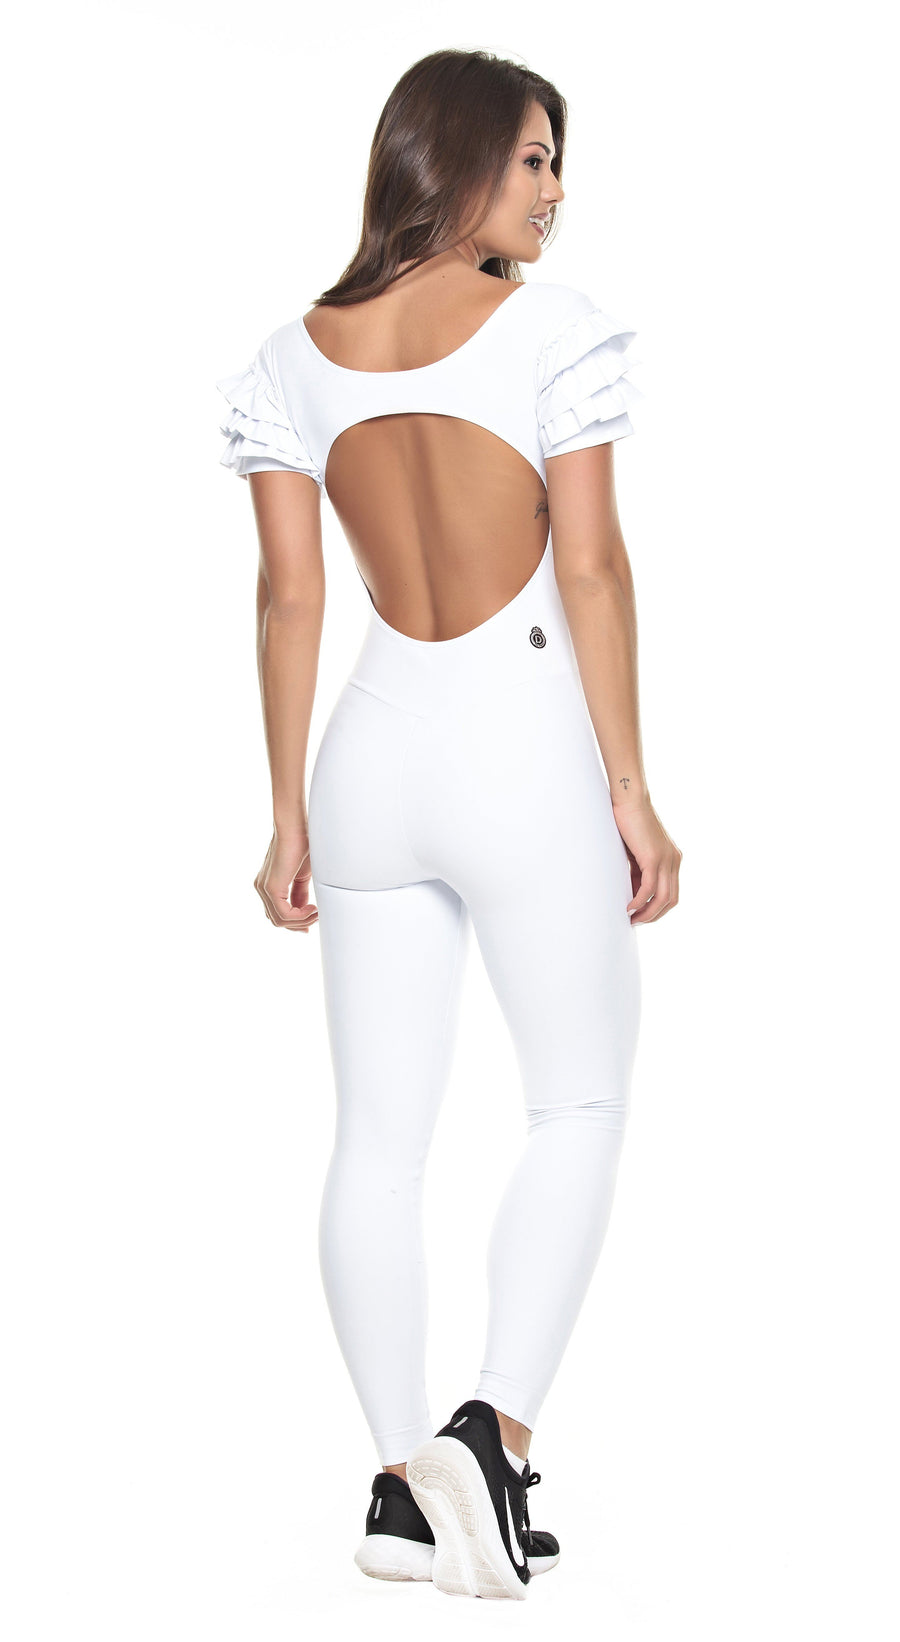 Brazilian Workout Jumpsuit - Ruffle White